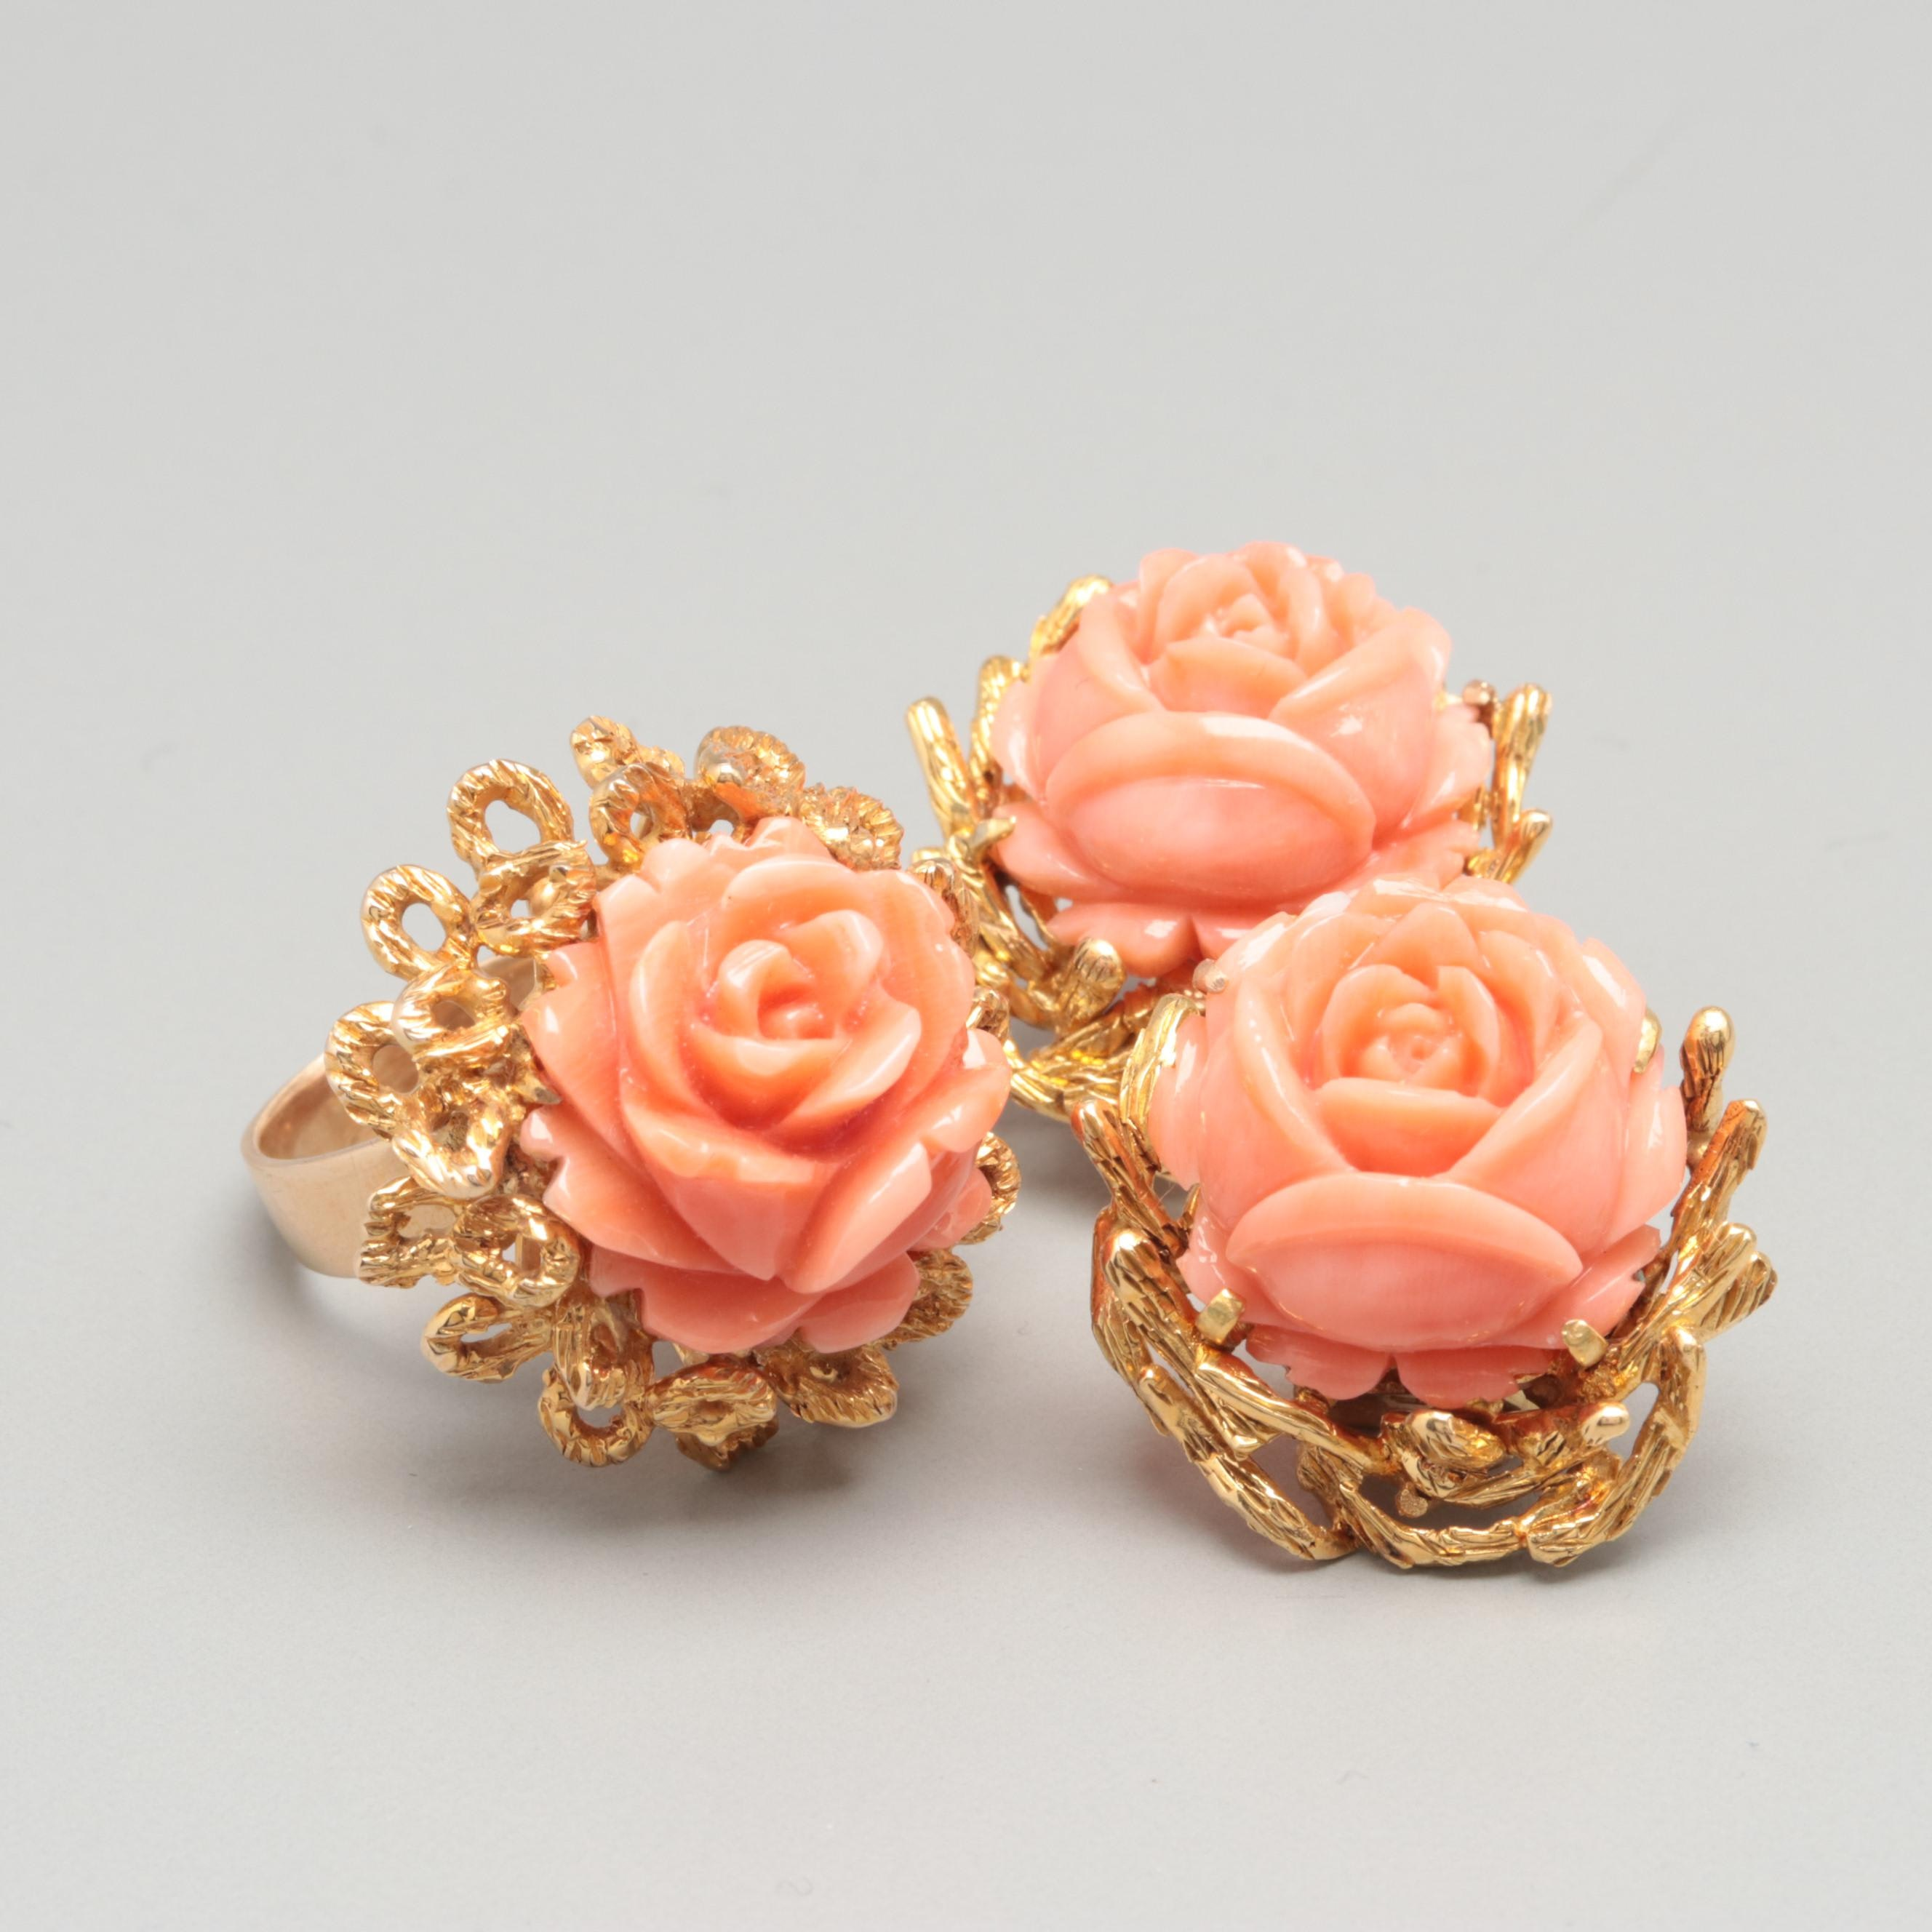 14K Yellow Gold Coral Ring and Earrings Set